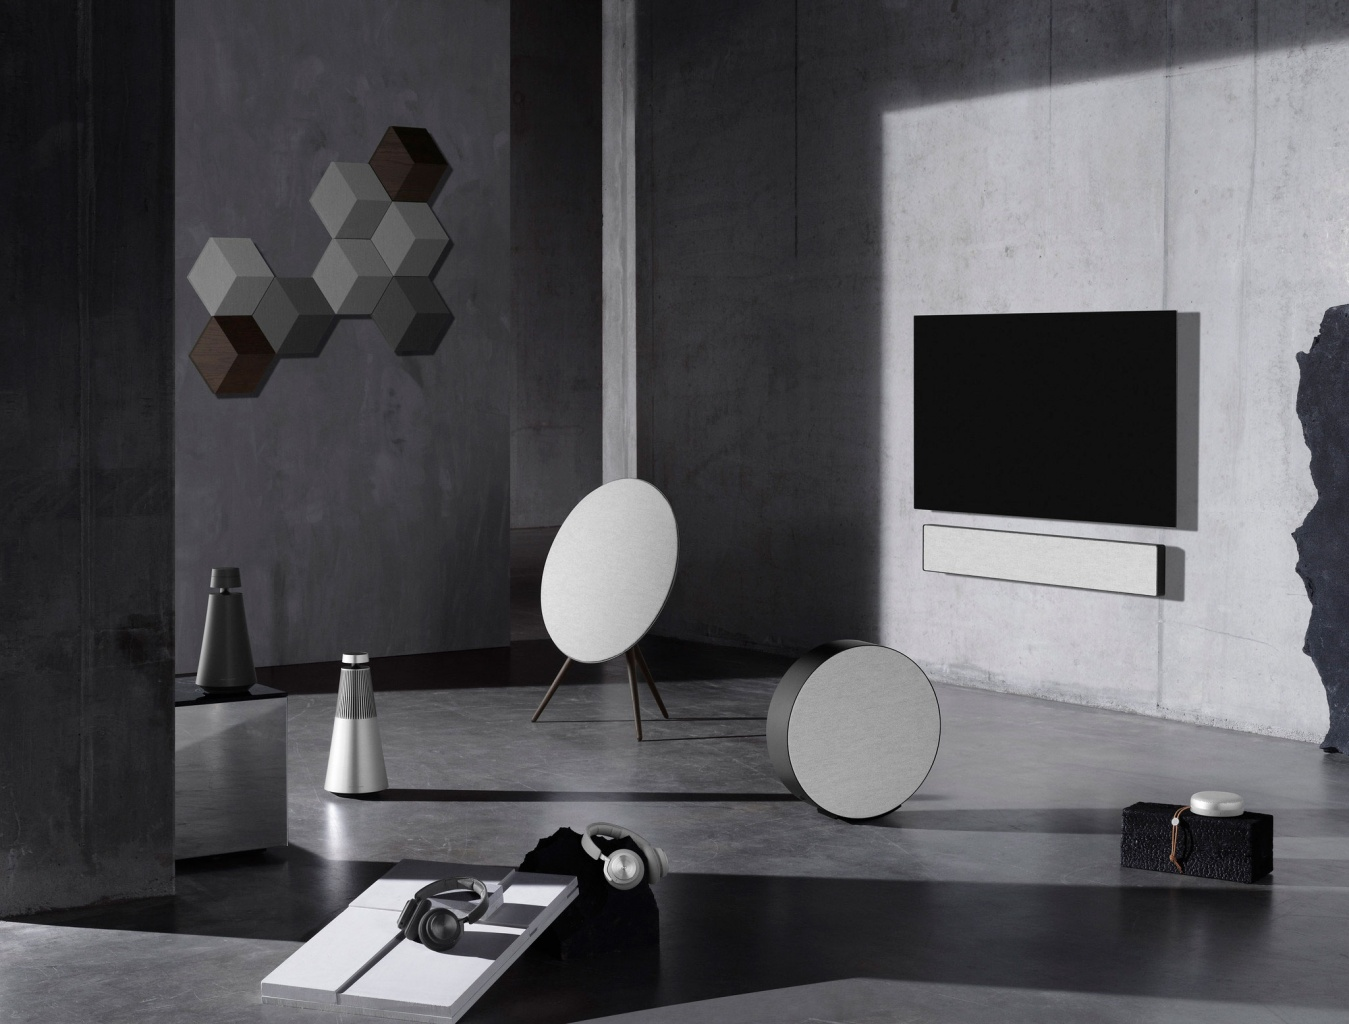 bang-and-olufsen-contrast-collection-01.jpg